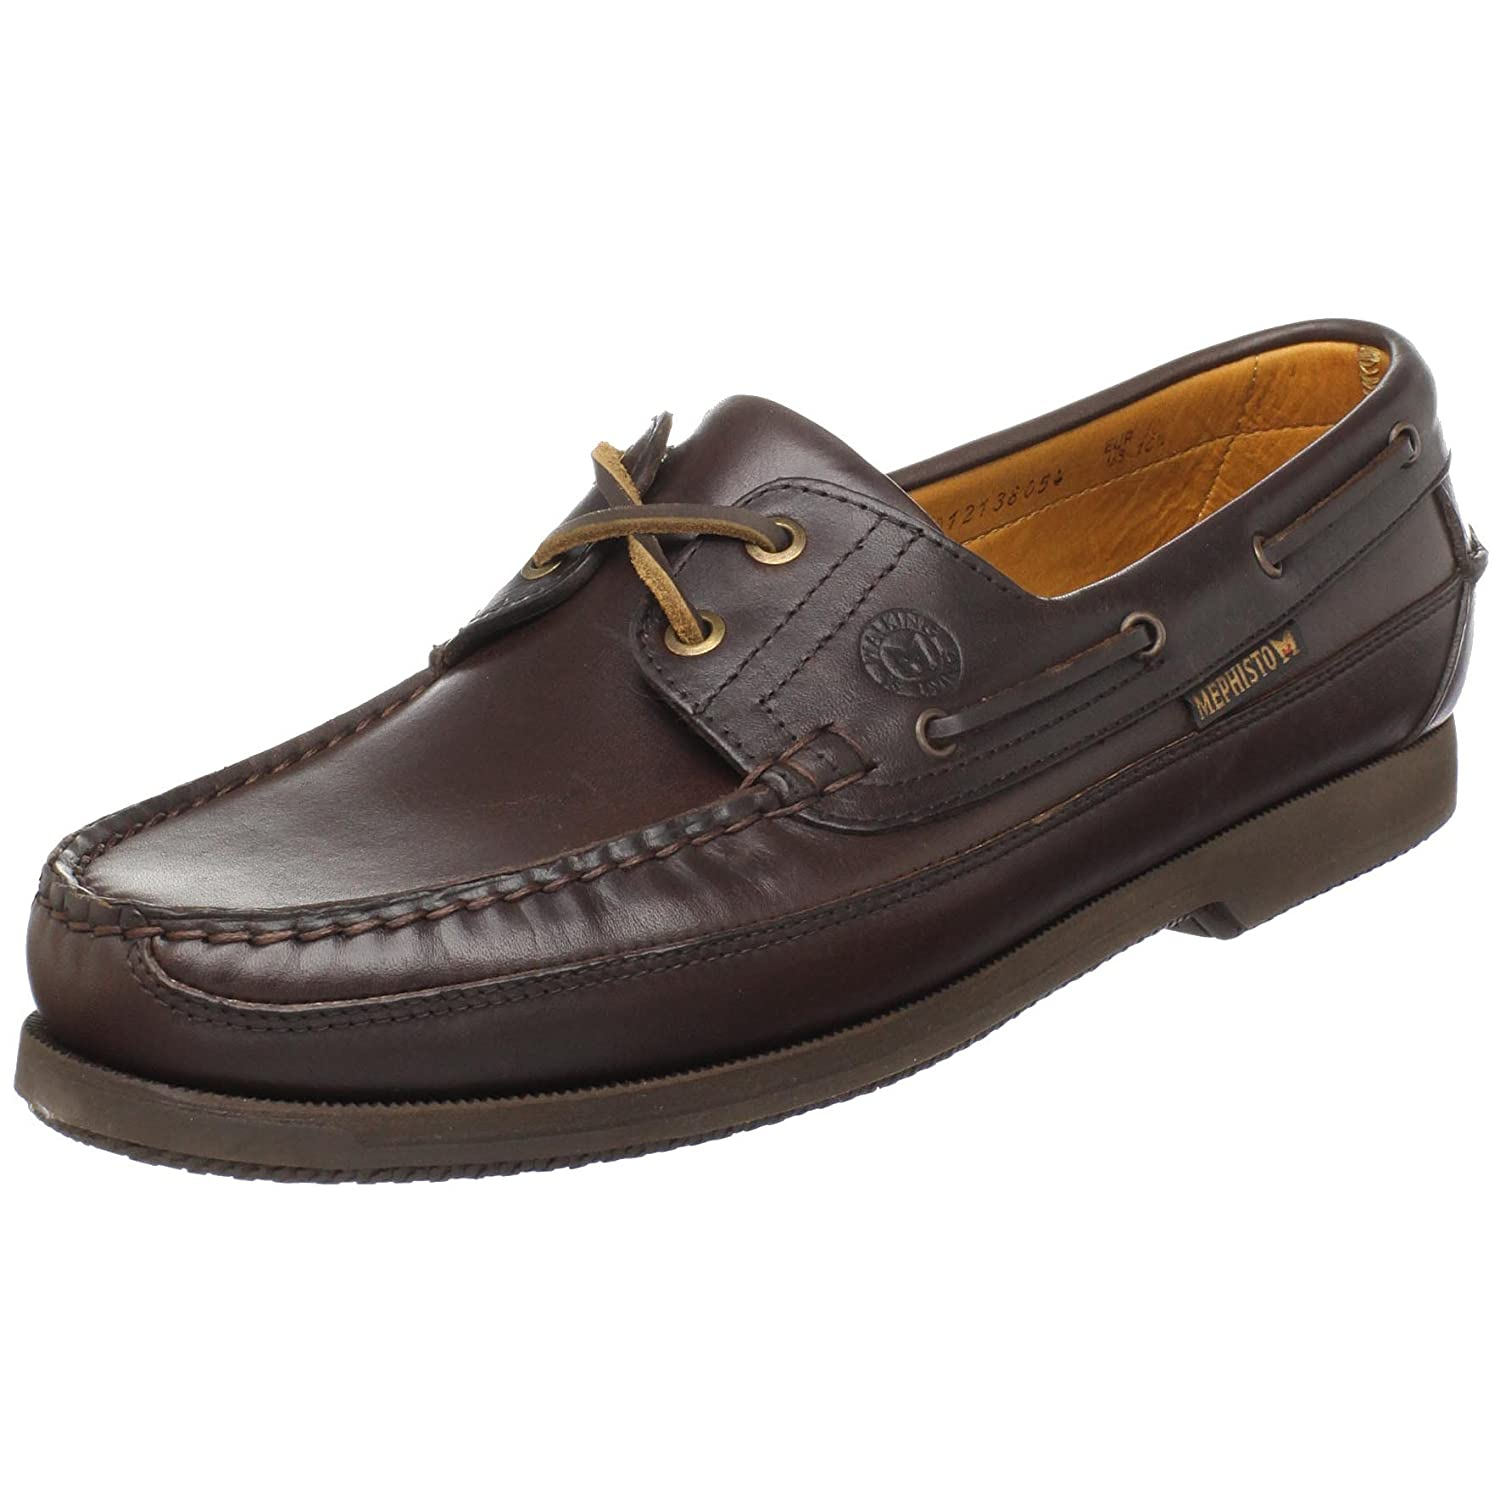 93069a0c3a Mephisto Men s Hurrikan Boat Shoe Dark Brown 7 D(M) US: Buy Online at Low  Prices in India - Amazon.in